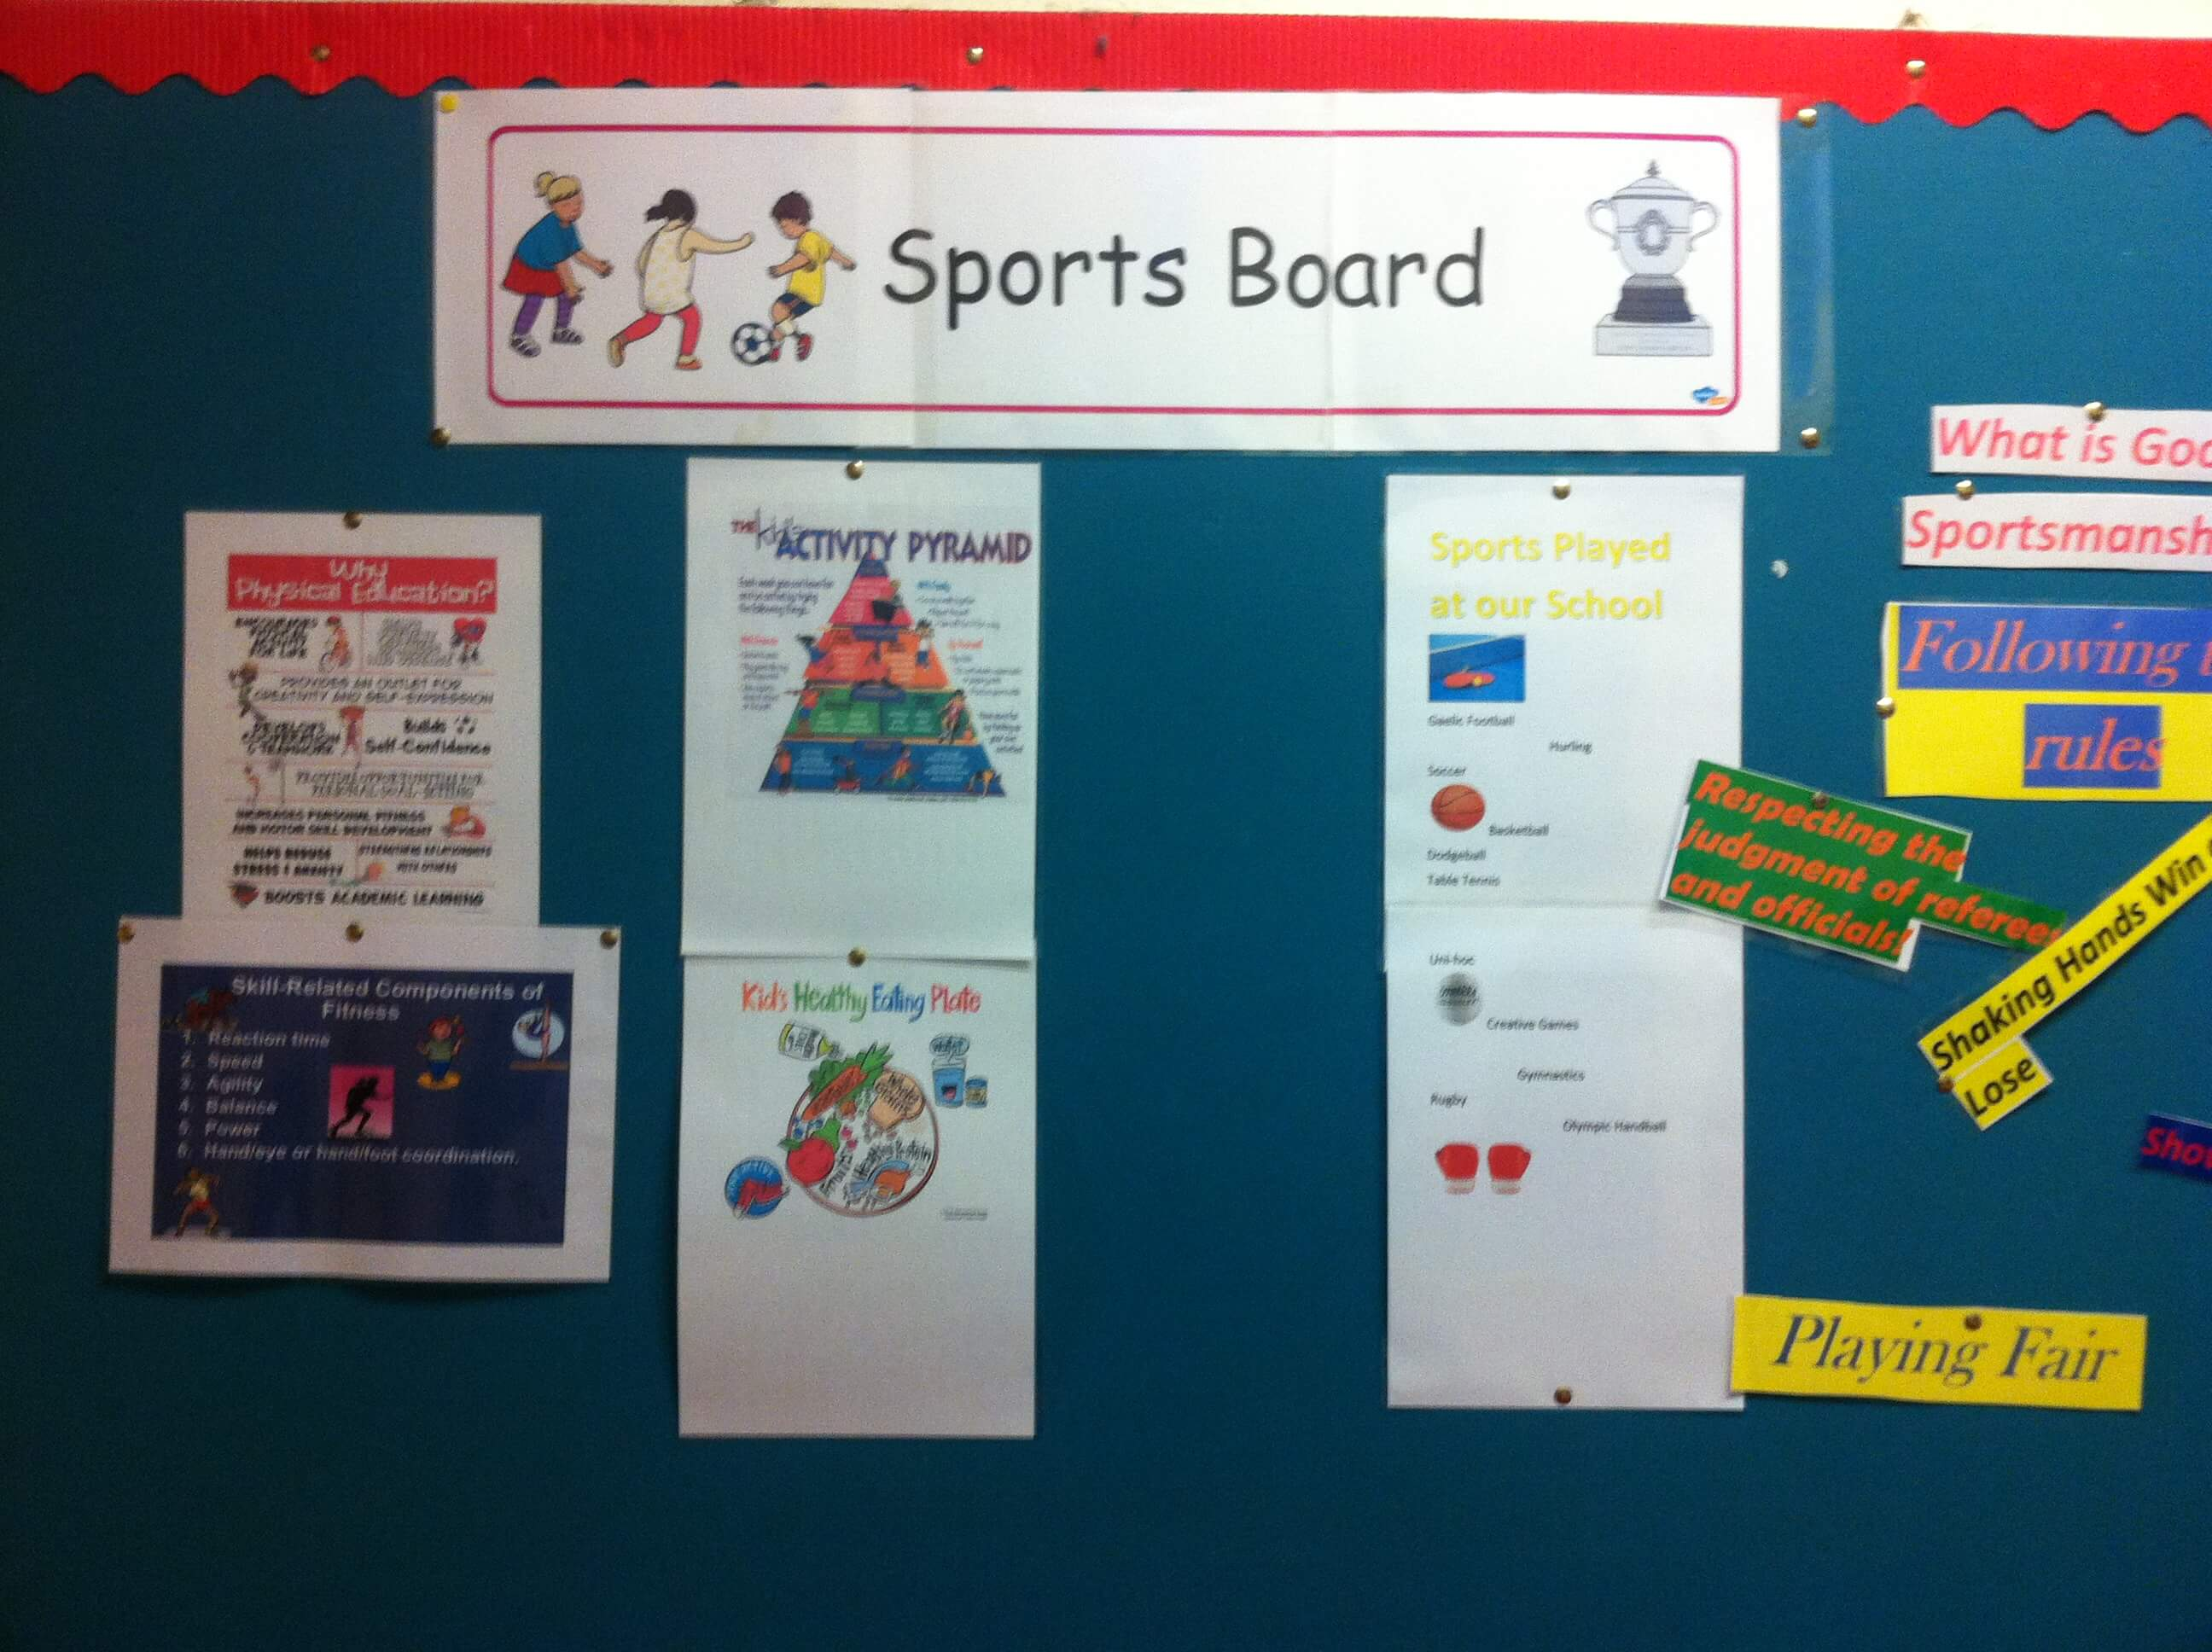 A photo of a St Laurences BNS Sports Board